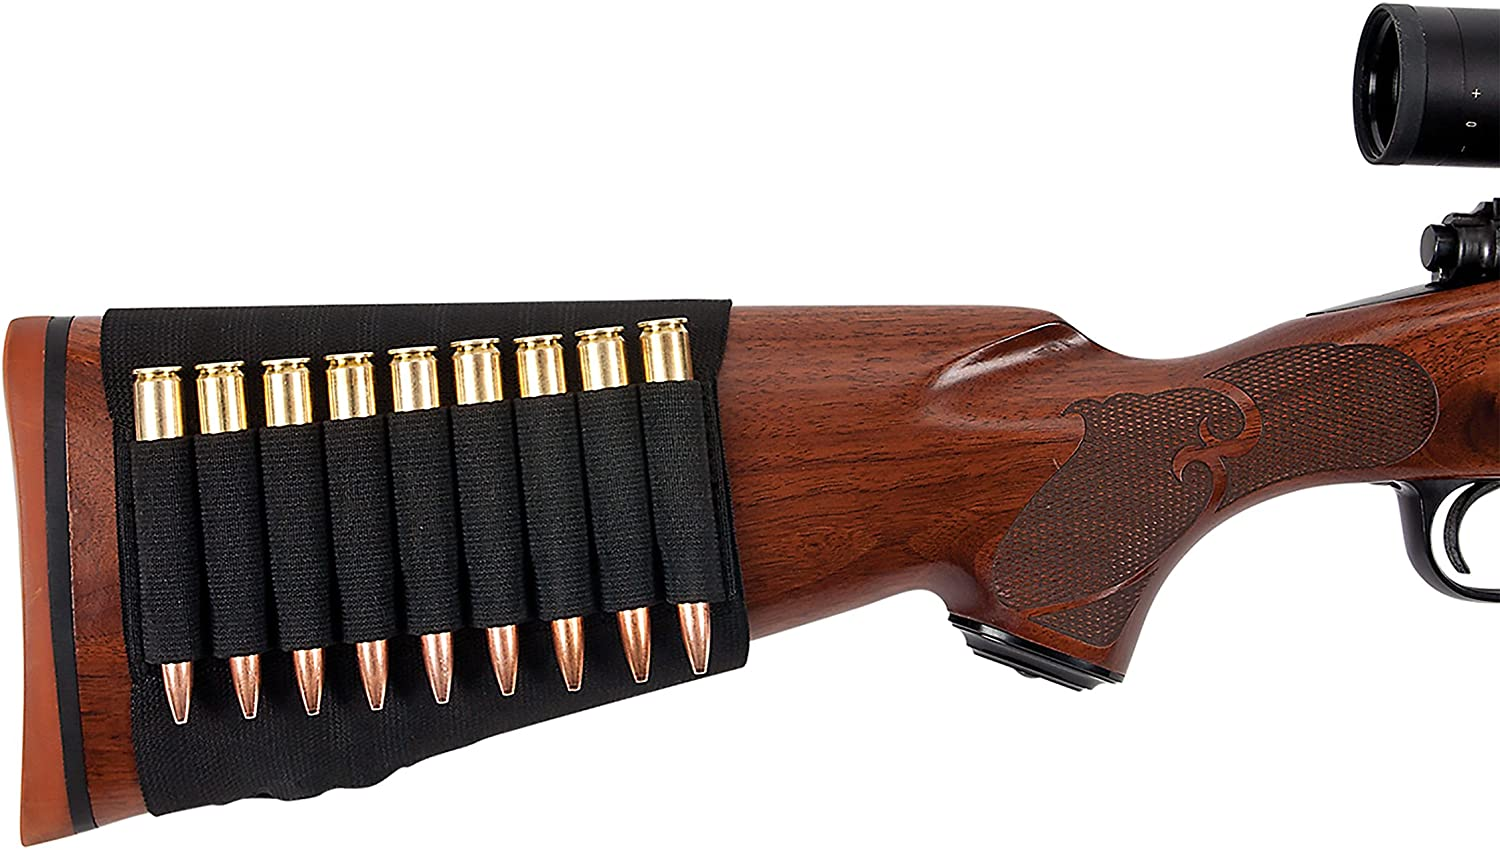 Allen Rifle Buttstock Shell/Cartridge Holder, fits most hunting rifles .270, 30.06, 6.5 creedmoor, 7mm : Gun Ammunition And Magazine Pouches : Sports & Outdoors